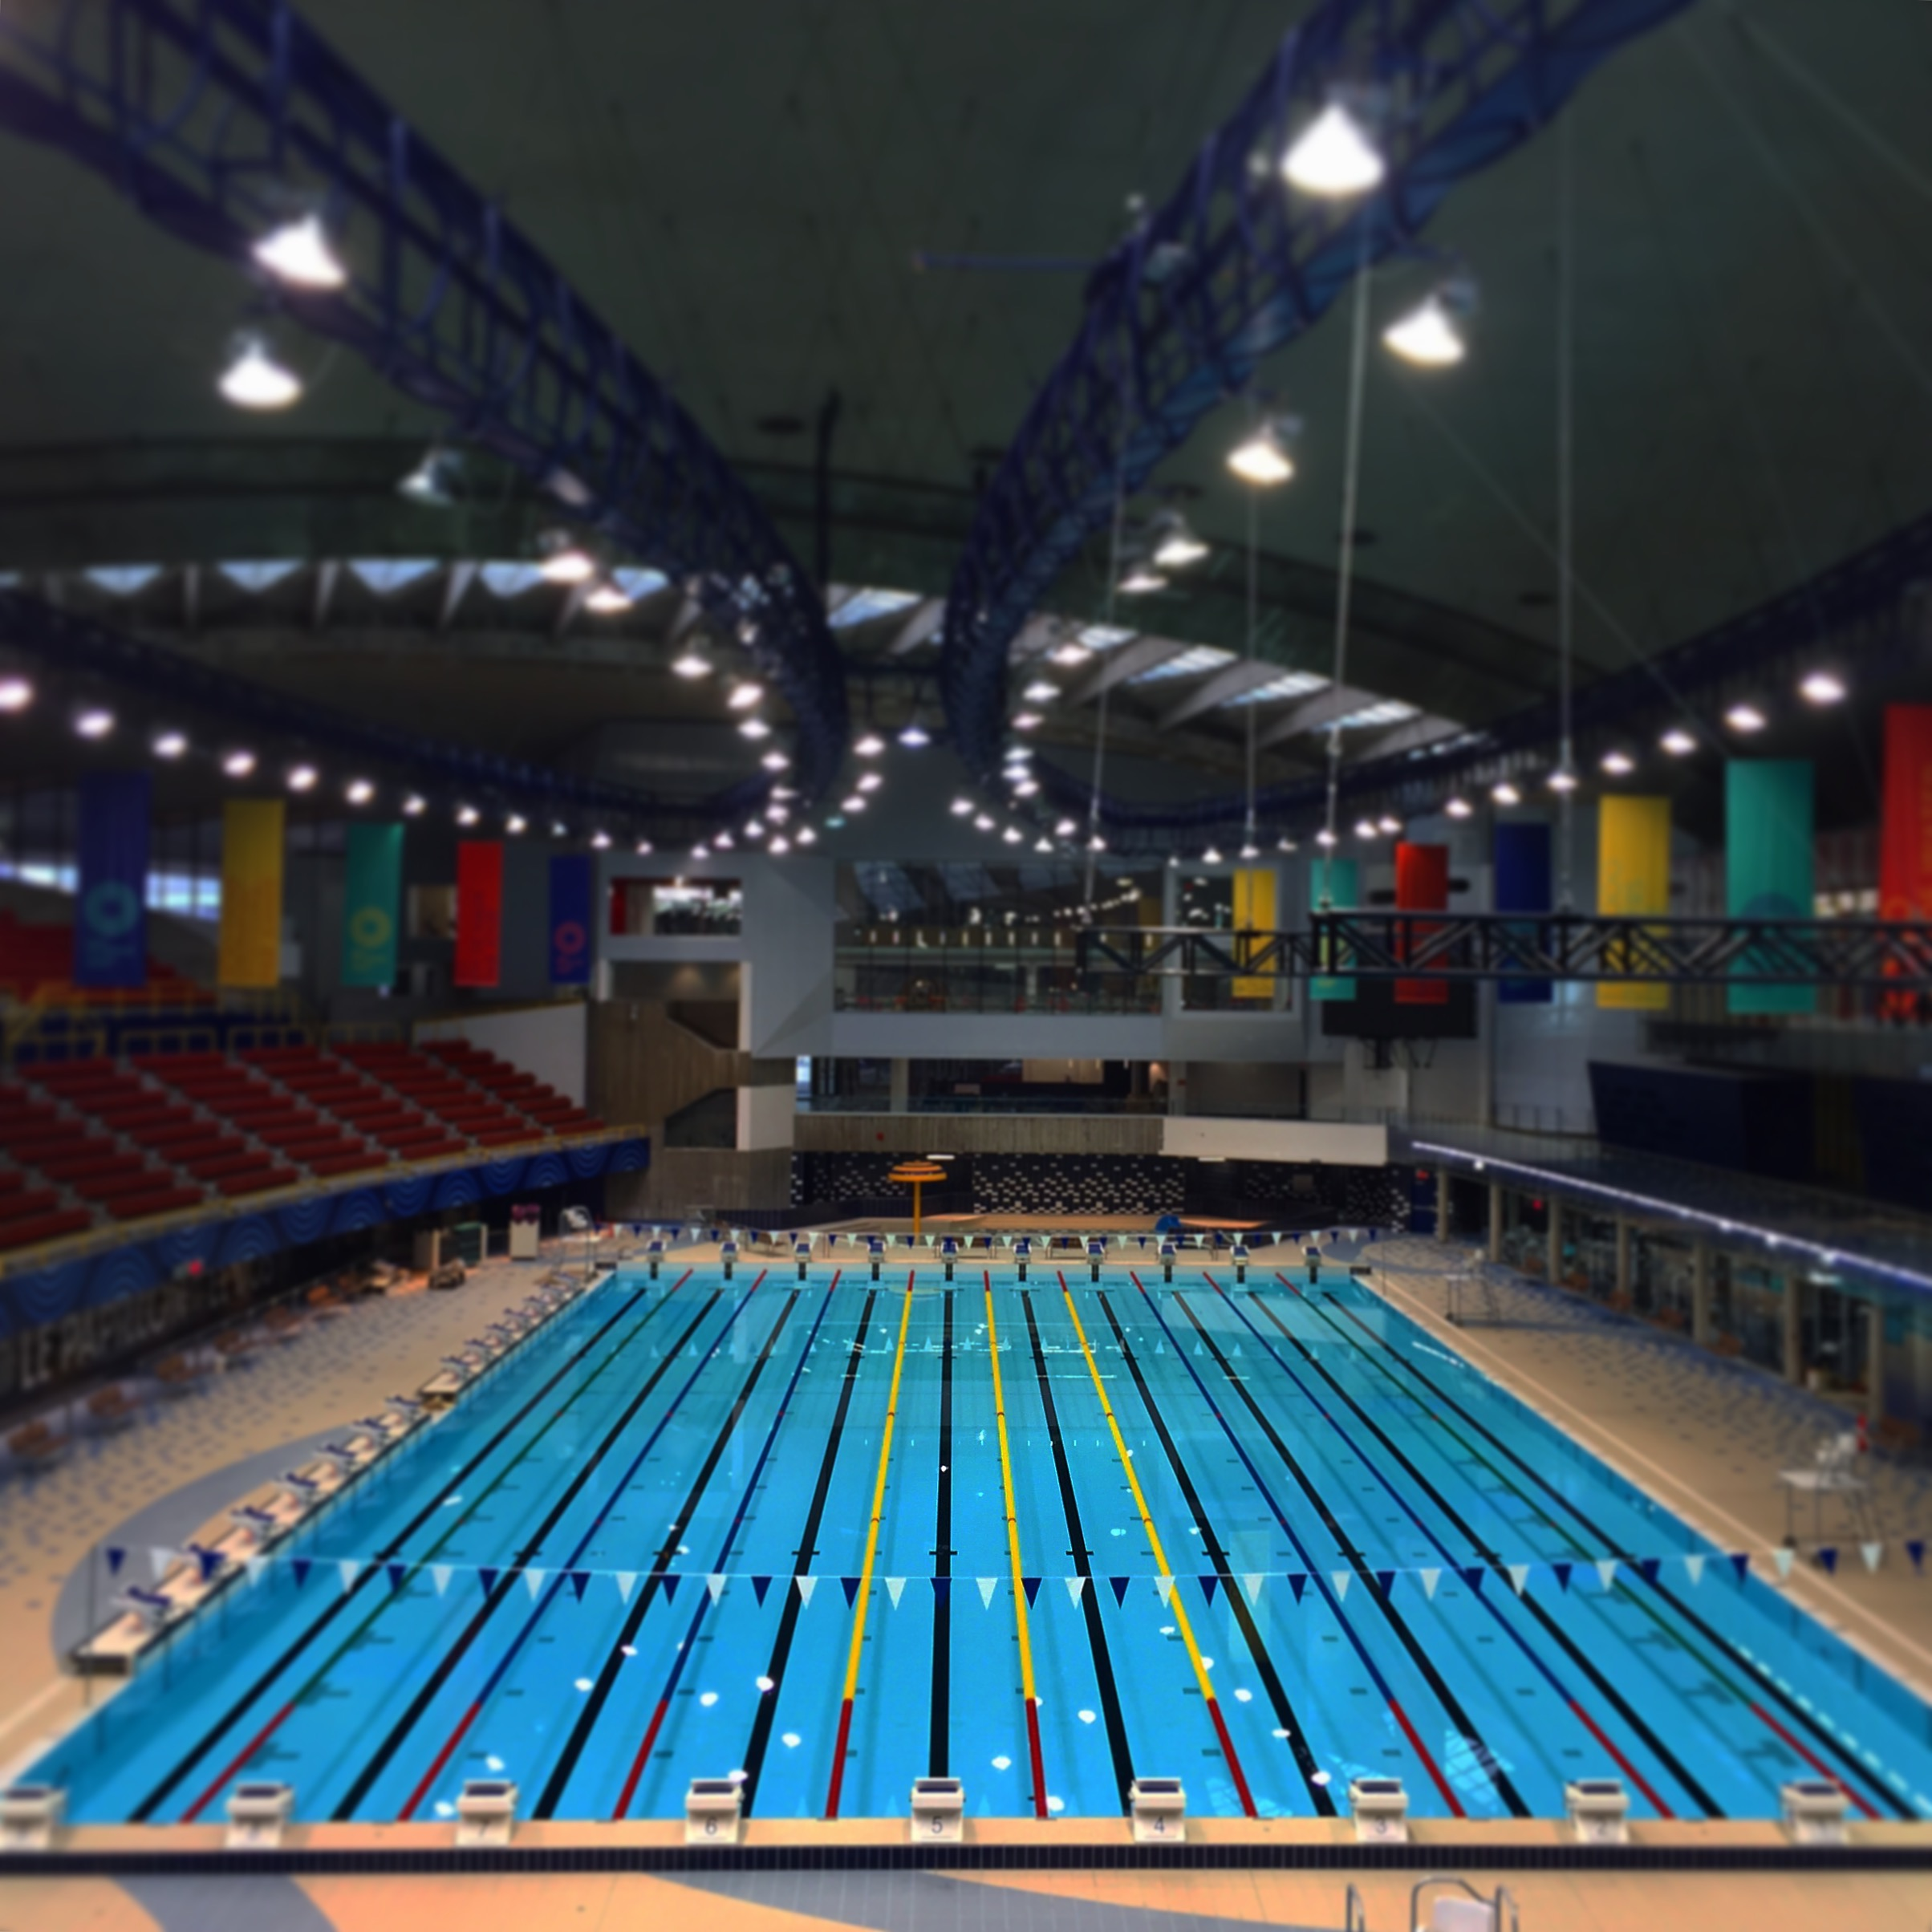 home olympic swimming pool 2015 intensive training program looks to take canadian swimming to new - Olympic Swimming Pool 2015